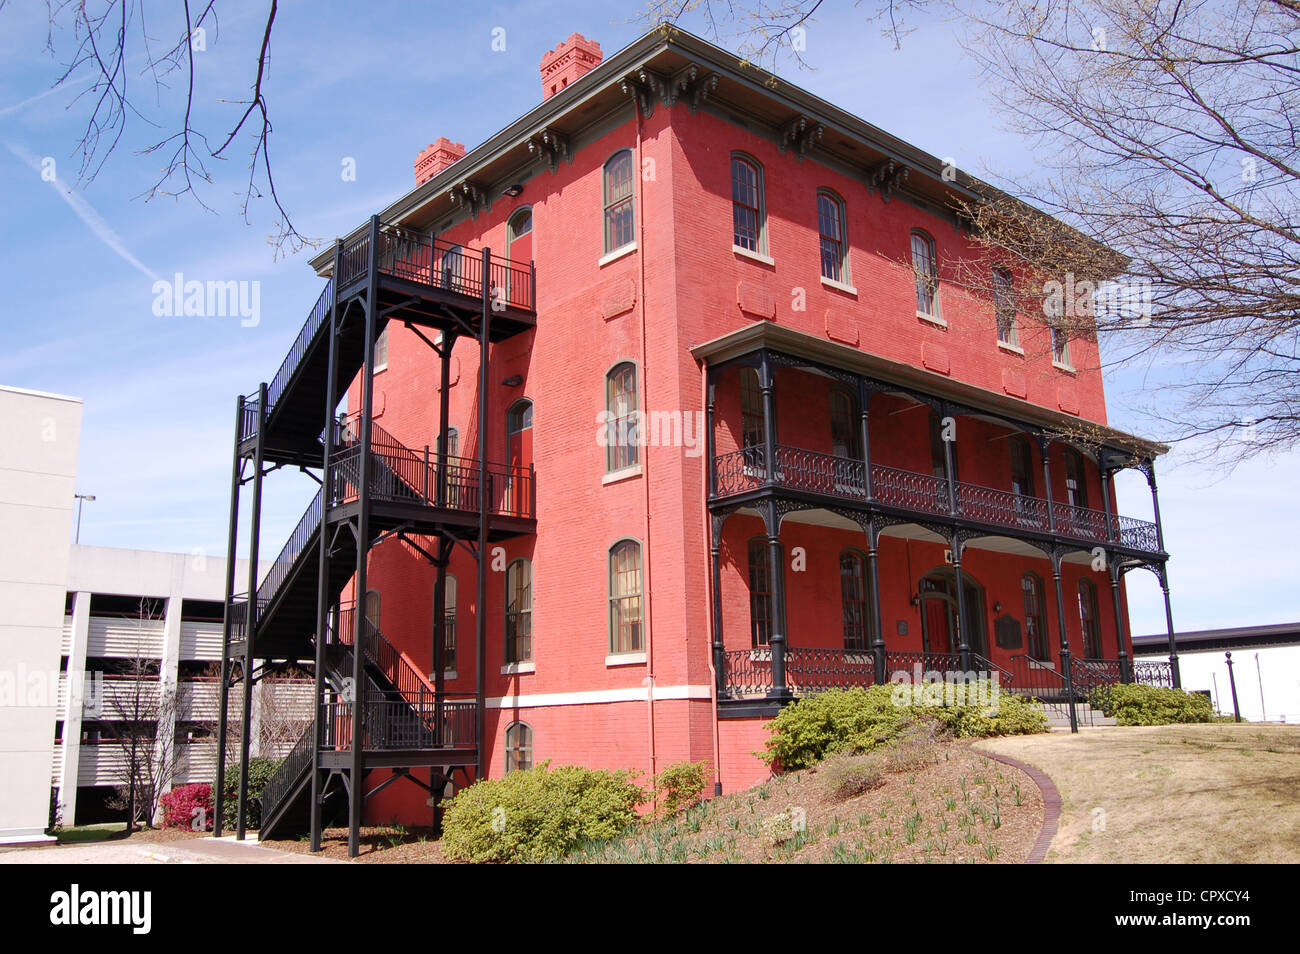 Raleigh and Gaston - Seaboard Coast Line Building in Raleigh, North Carolina - Stock Image